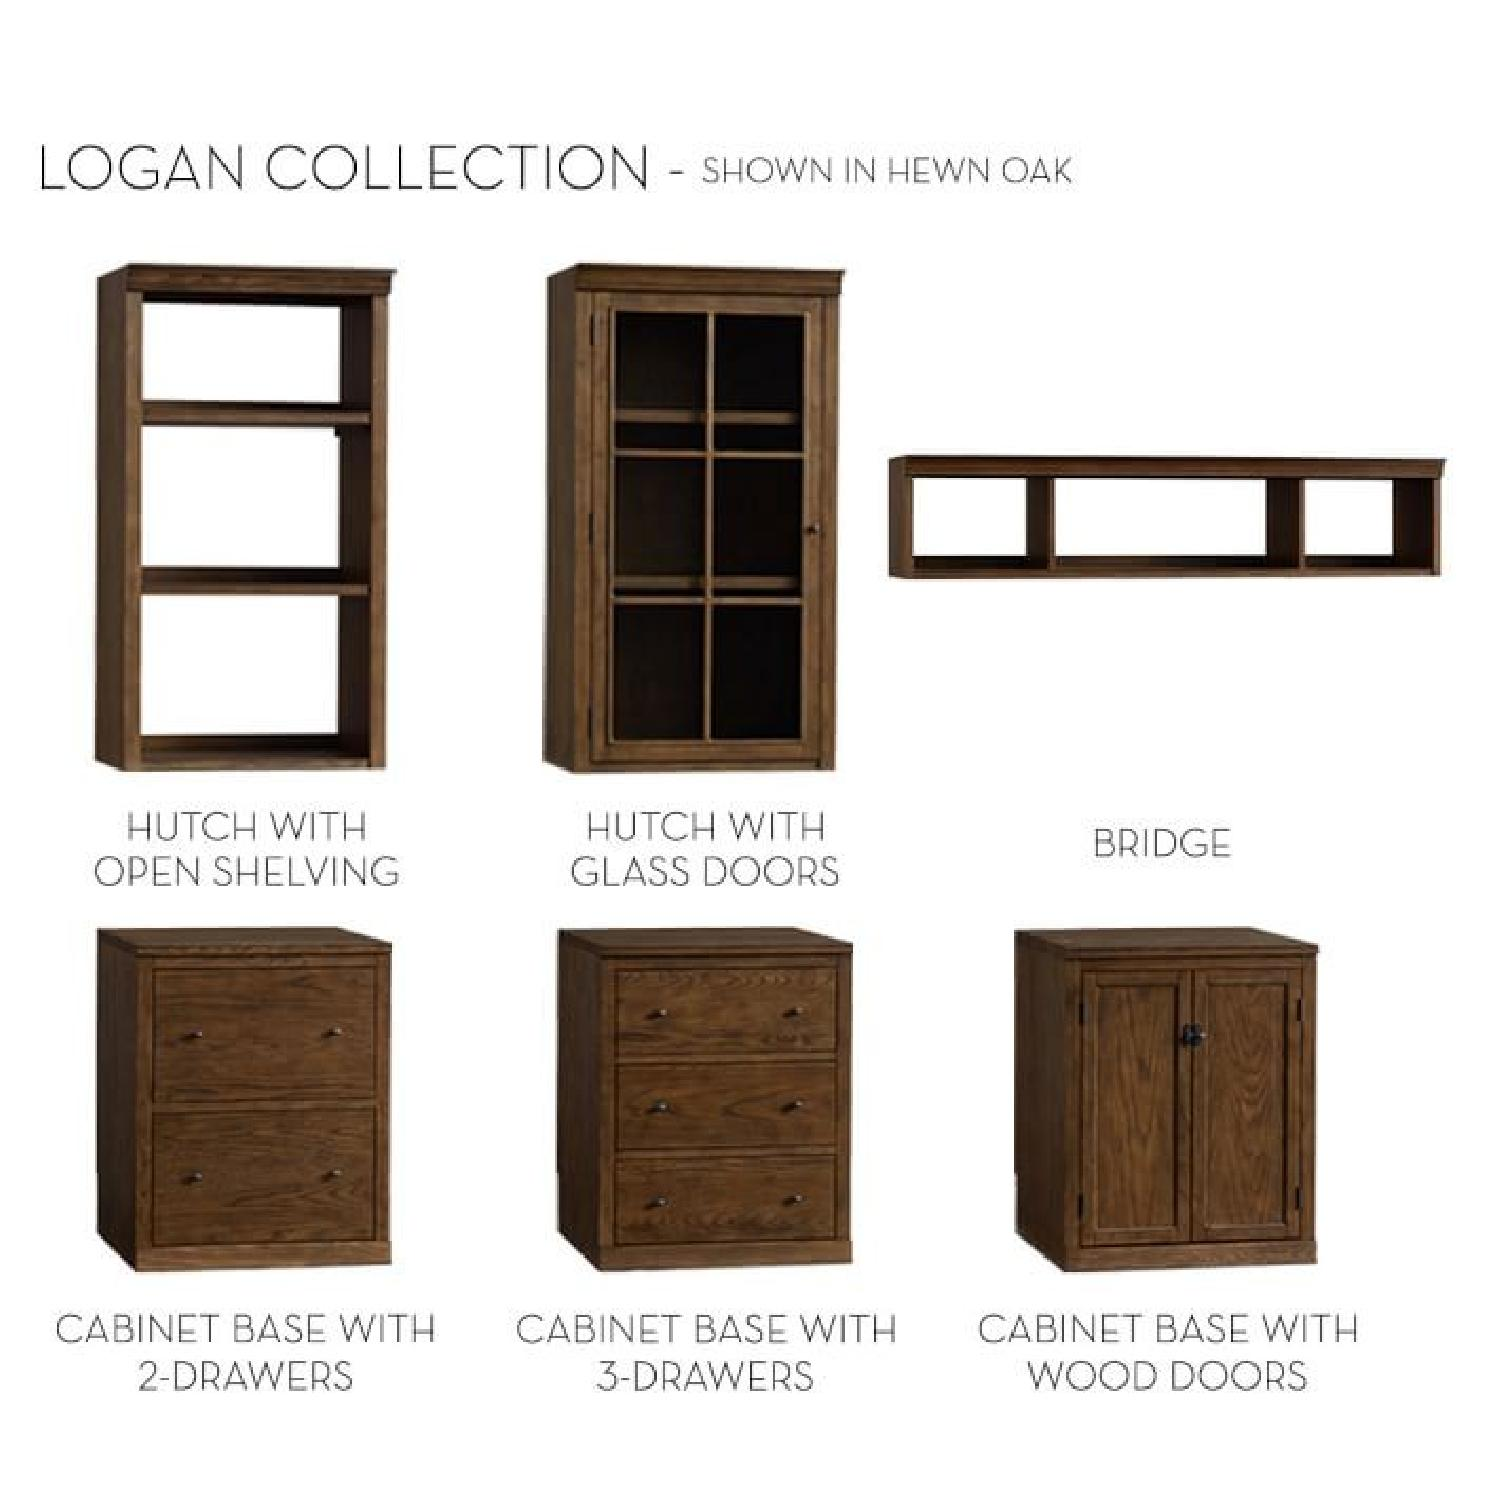 Pottery Barn Logan Bookcase w/ Cabinet Doors-0